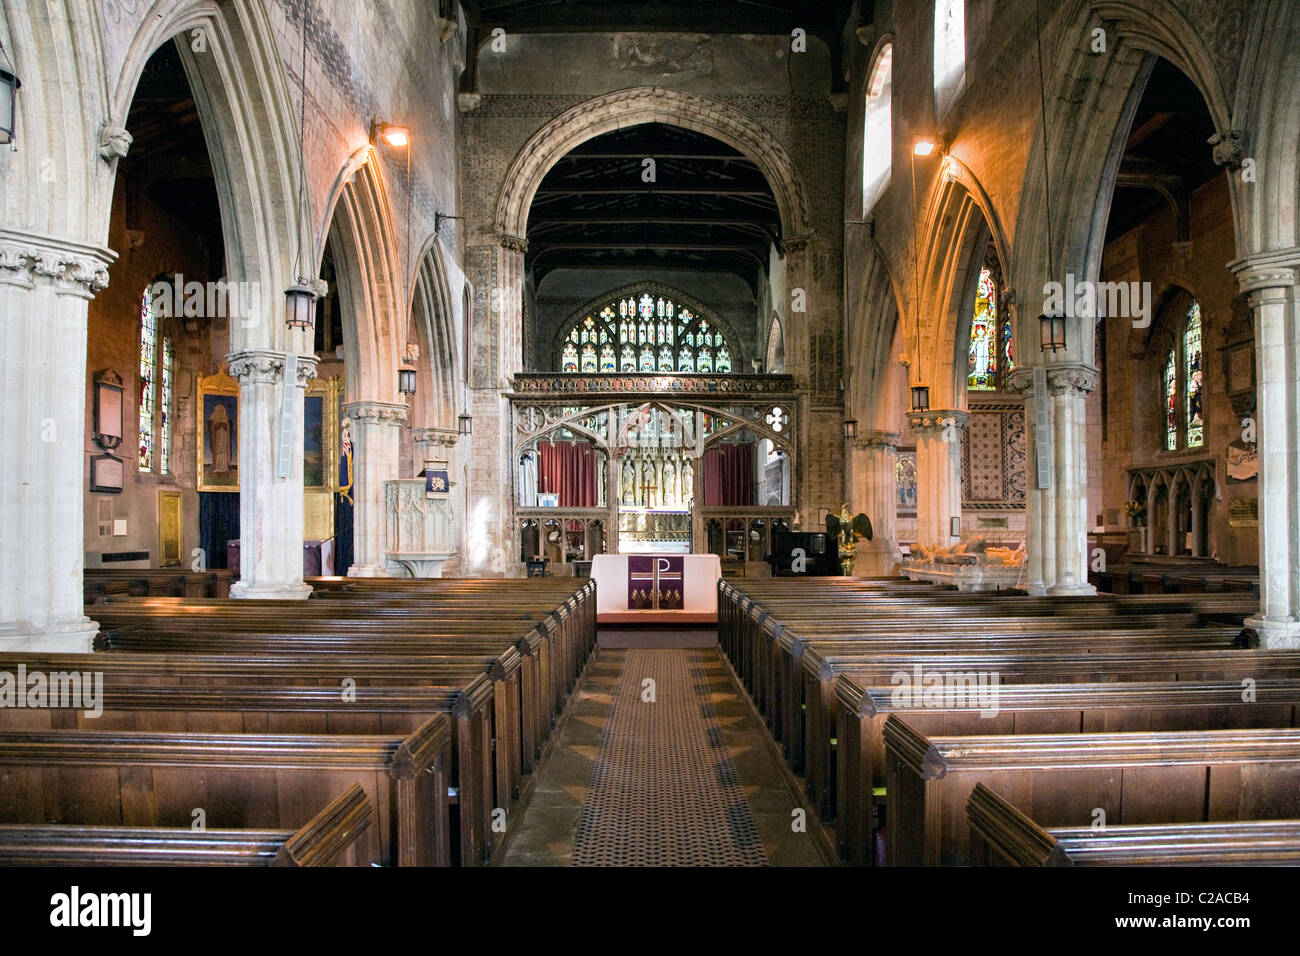 Interior of St Mary the Virgin church Berkeley in Gloucestershire - Stock Image